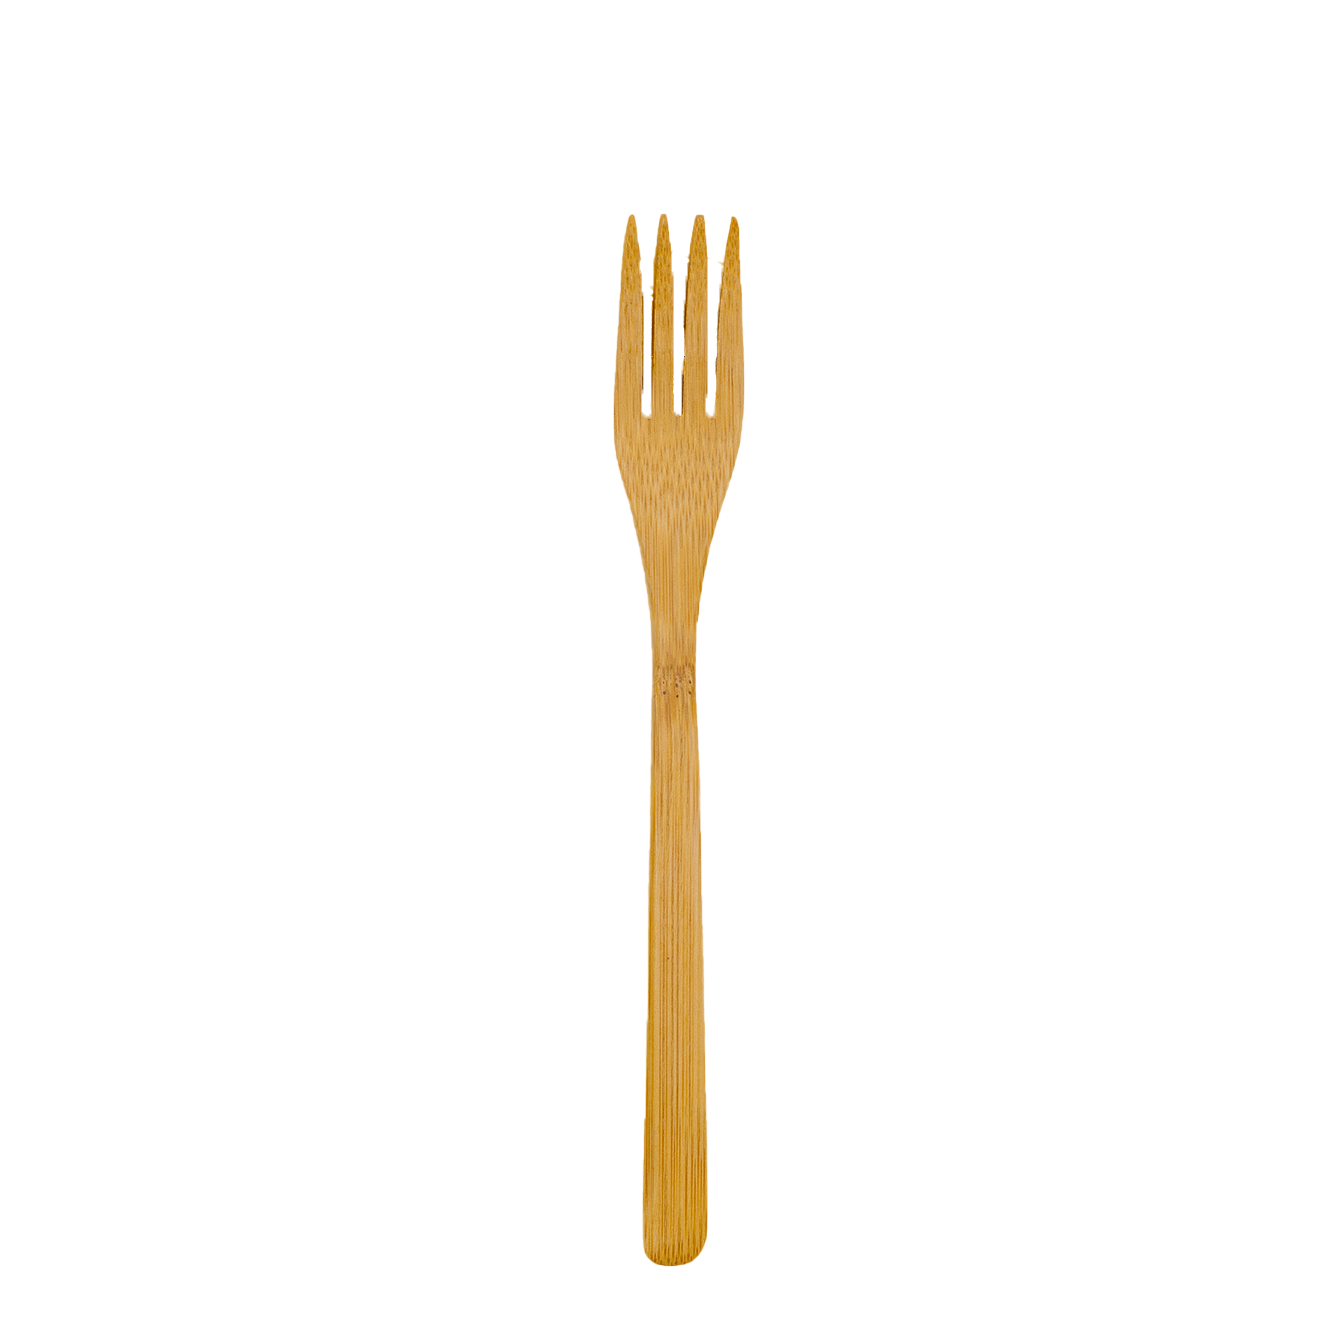 We get it, sometimes you only need a piece to the set! Our individual Bamboo Fork is here for you if you lost your old set or just want to start with chopsticks. Bamboo is the most sustainable plant on Earth and can be composted at the end of its use. Shipped and packaged 100% plastic free. Shop now at rplanetshop.com.